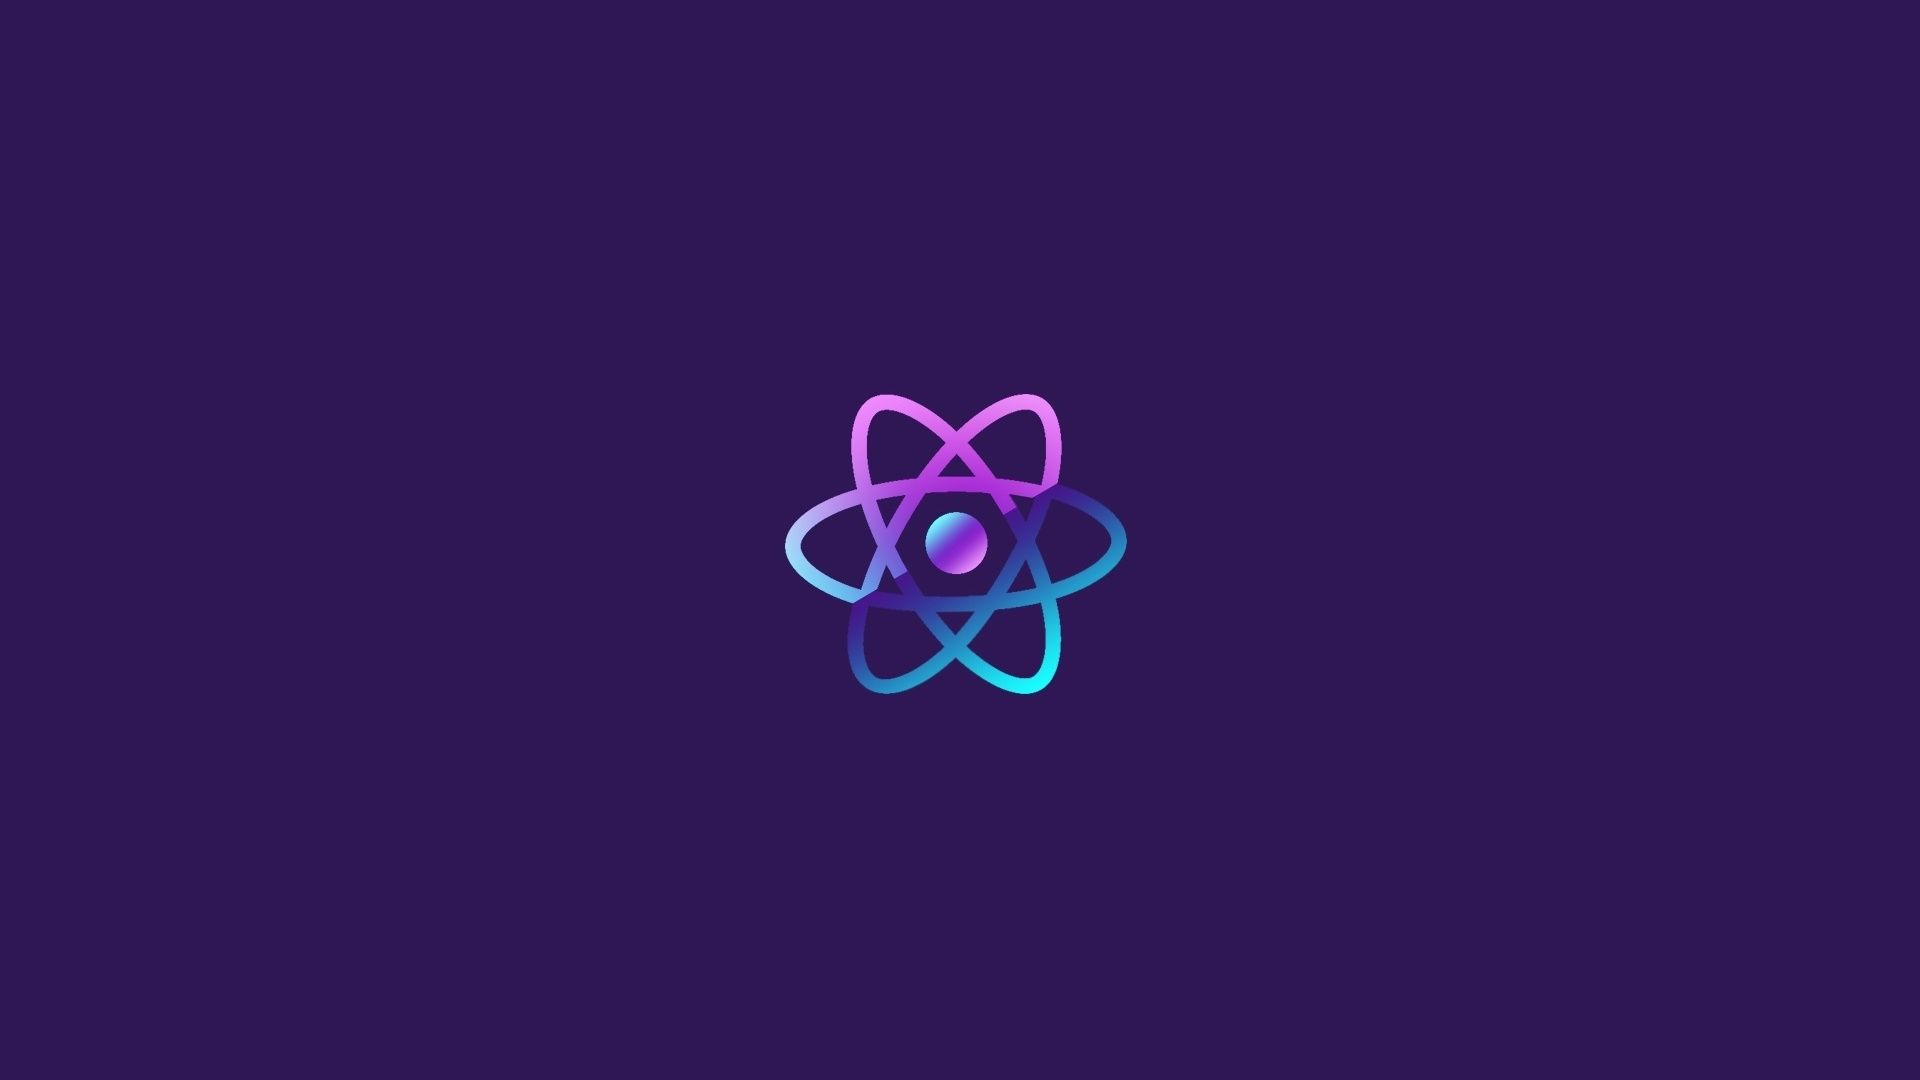 Download 1920x1080 Wallpaper Reactjs Atom Minimal Full Hd Hdtv